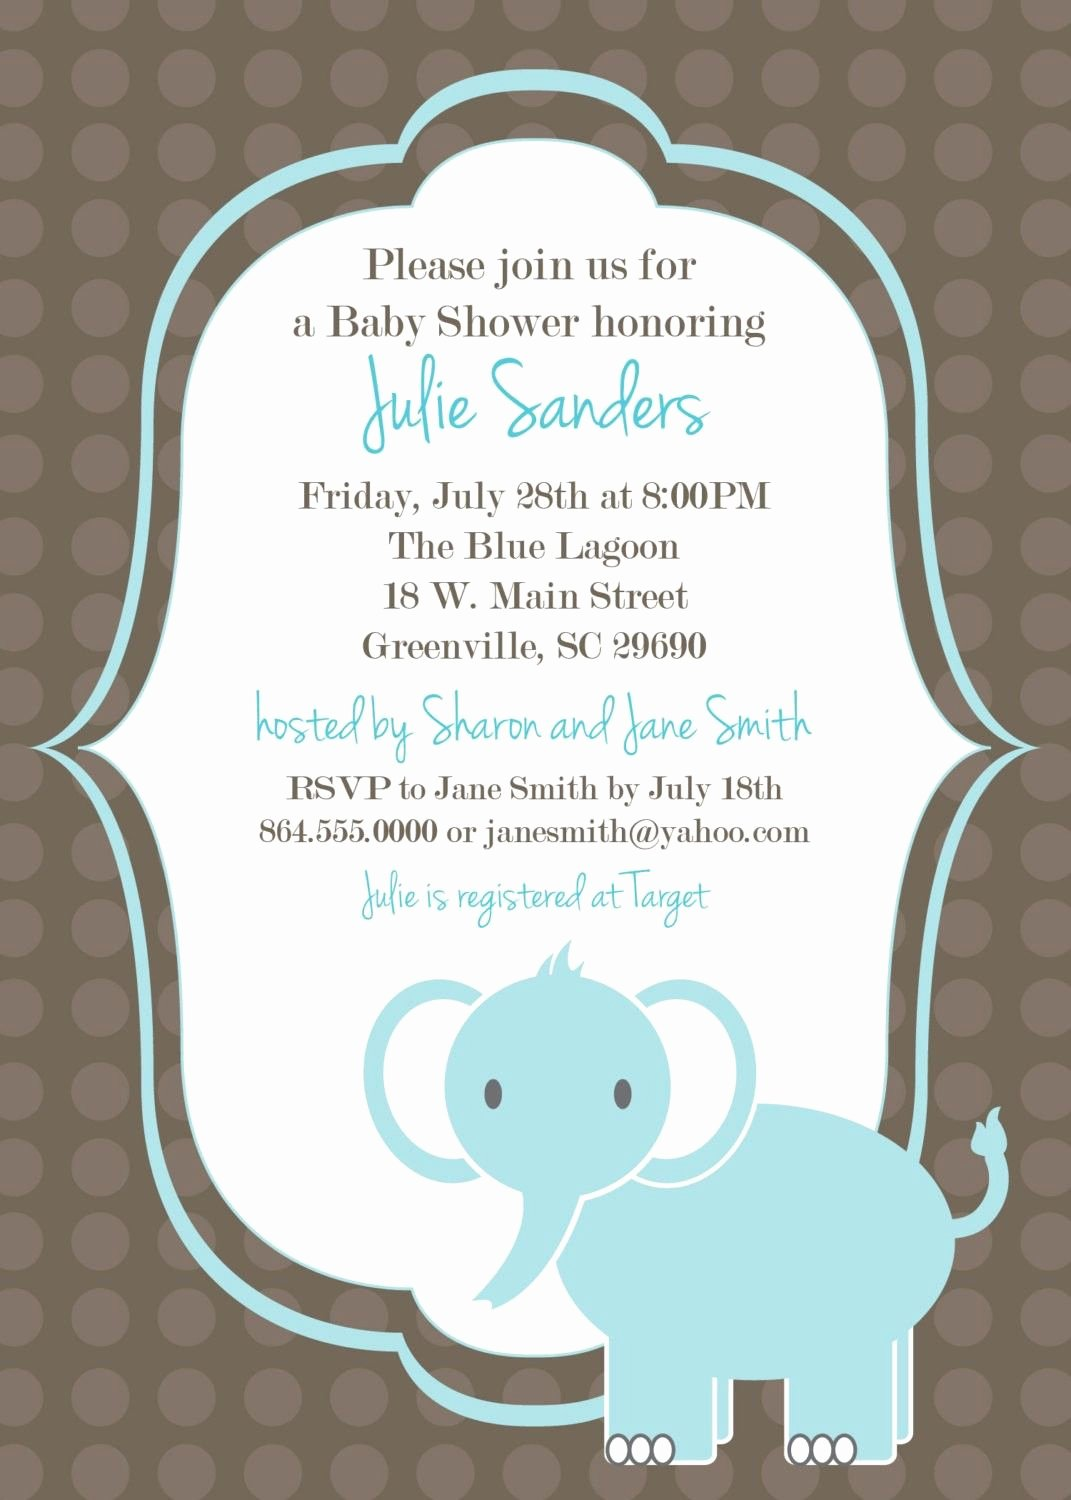 Baby Shower Tag Template New Free Printable Baby Shower Invitation Templates